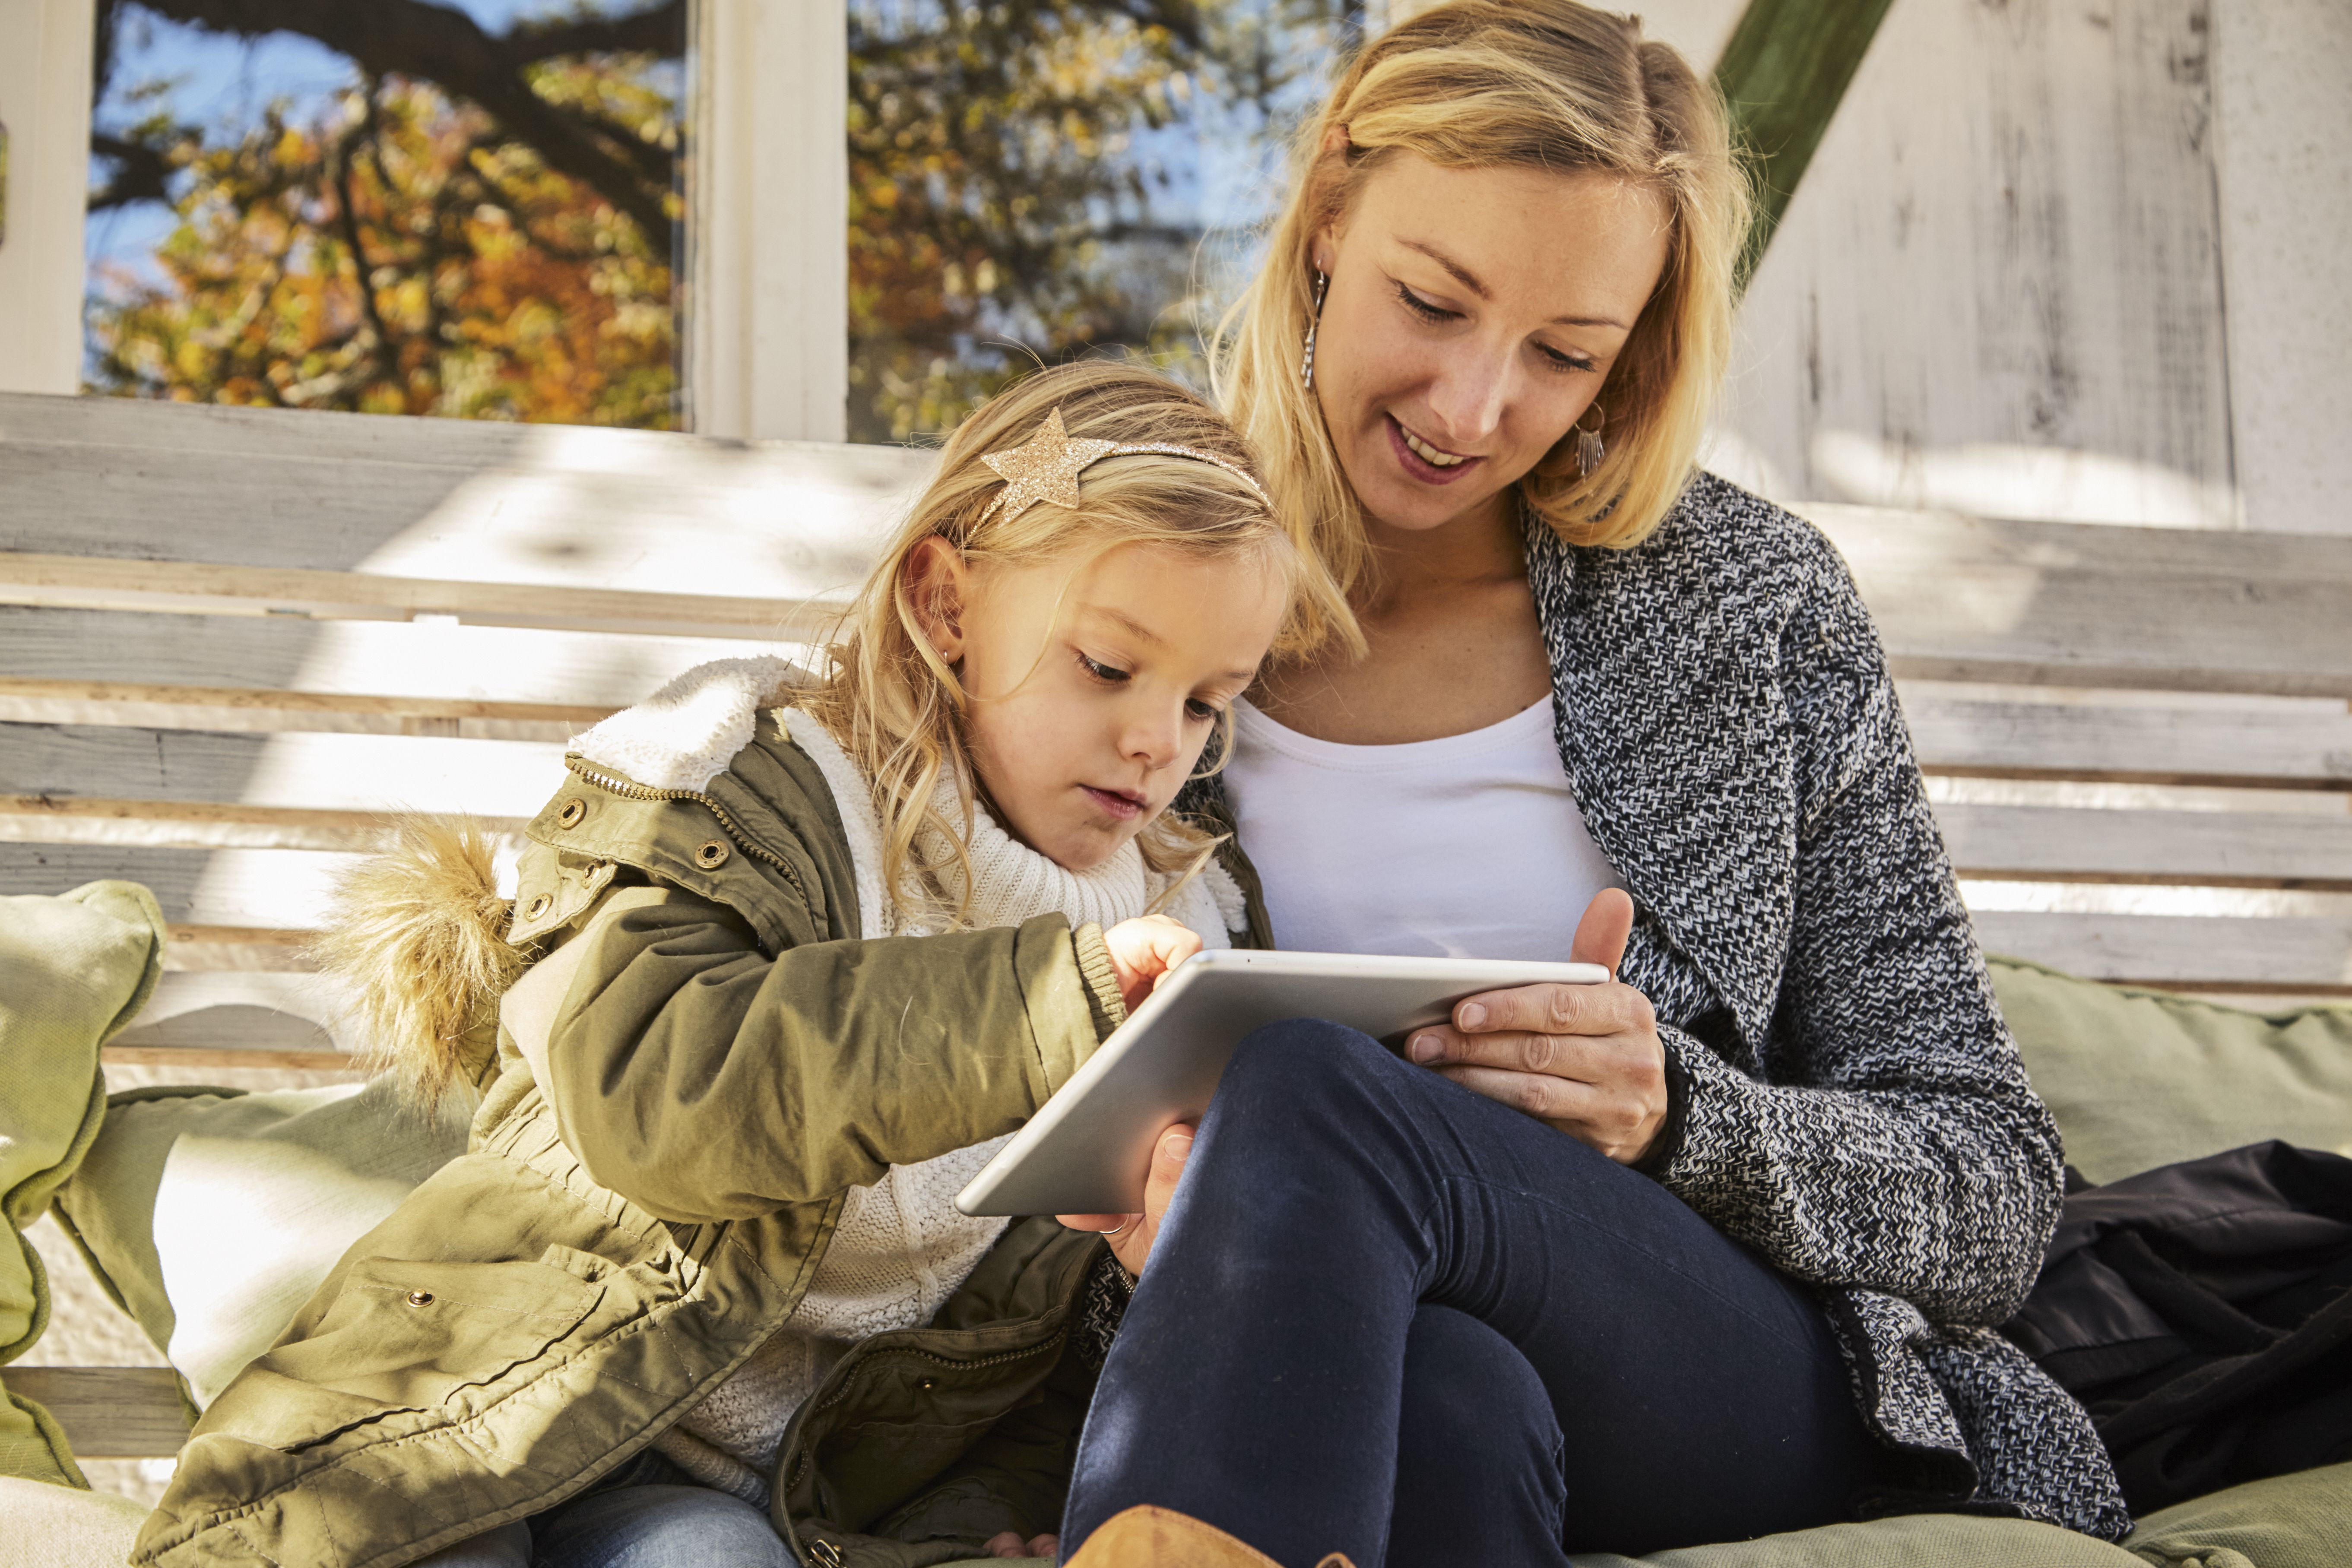 Mother with daughter on bench using tablet